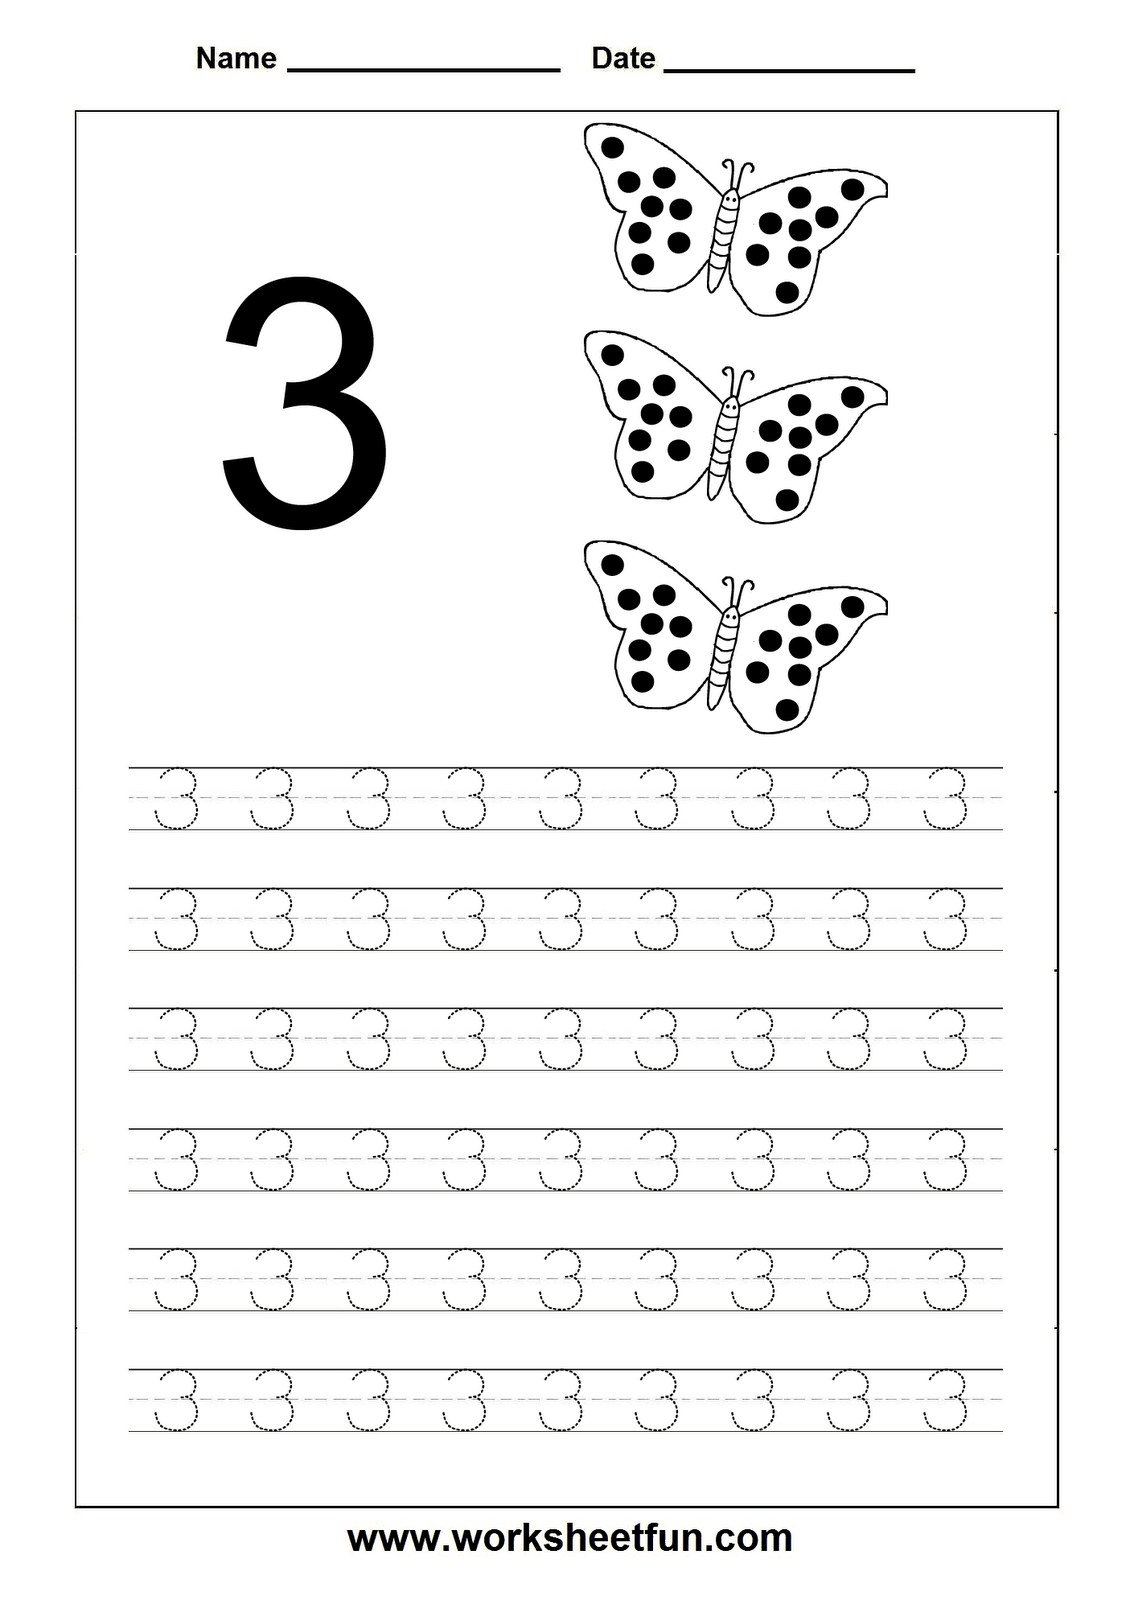 Number Tracing 3 School Stuff Pinterest Number Tracing